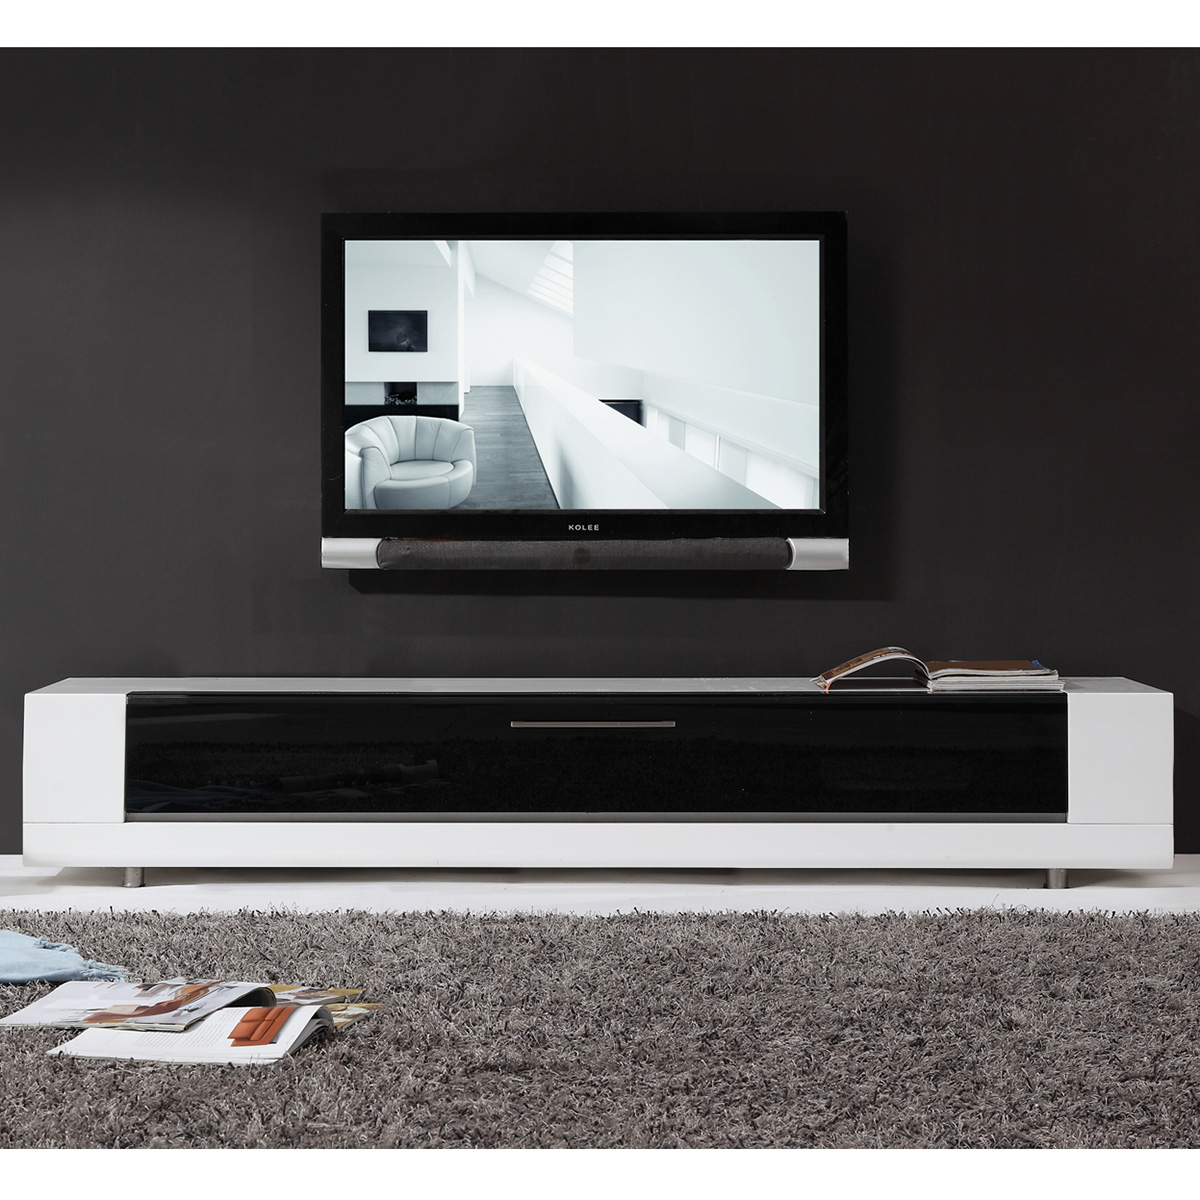 Editor Remix 79  Contemporary TV Stand in High Gloss White Lacquer  Flip  Down Glass. B Modern Minimalist Design Contemporary TV Stands   Furniture at